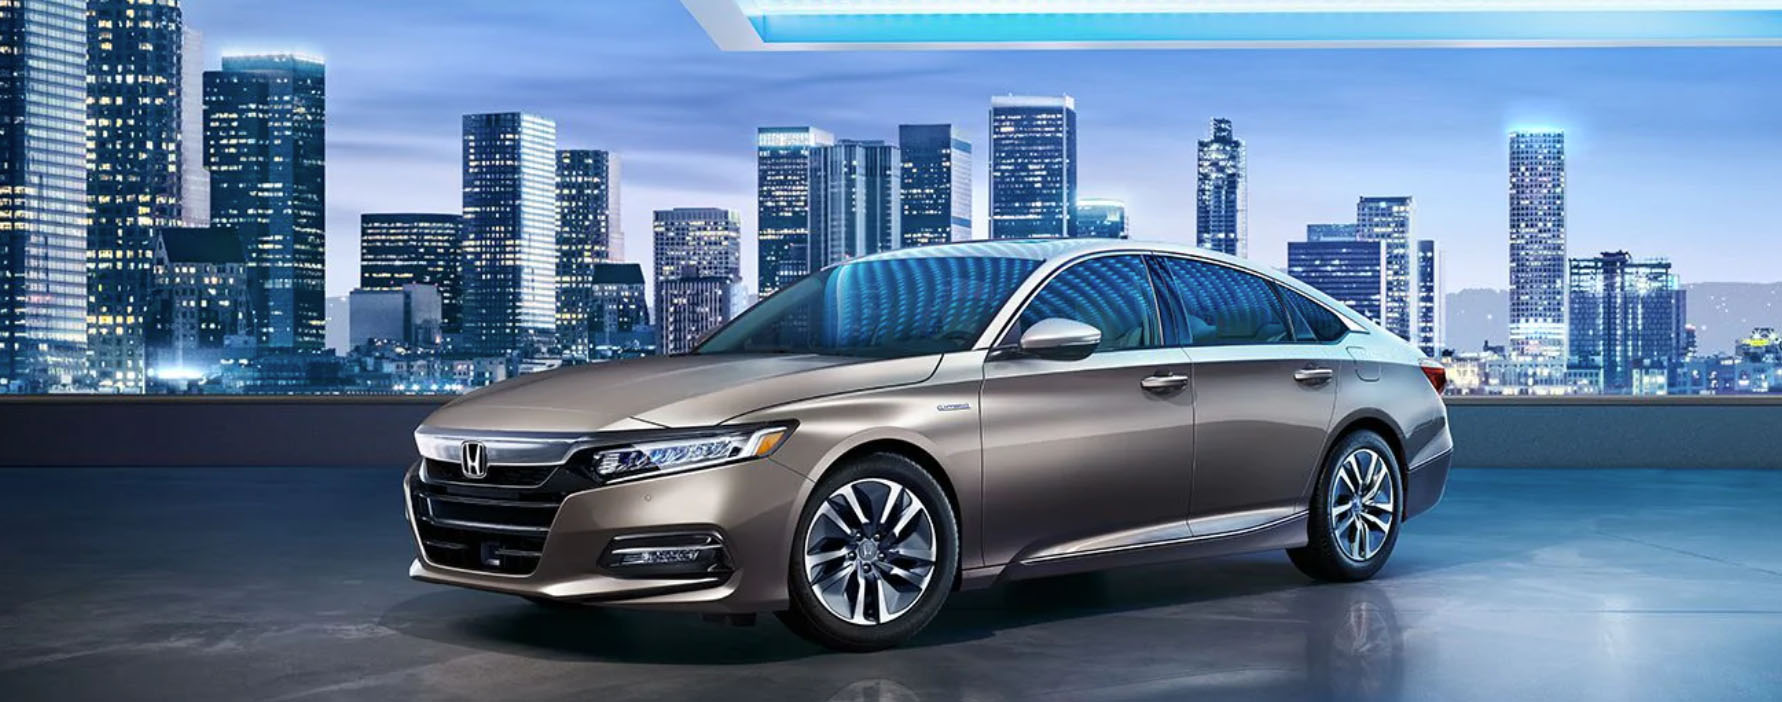 2020 Honda Accord For Sale in Manhasset